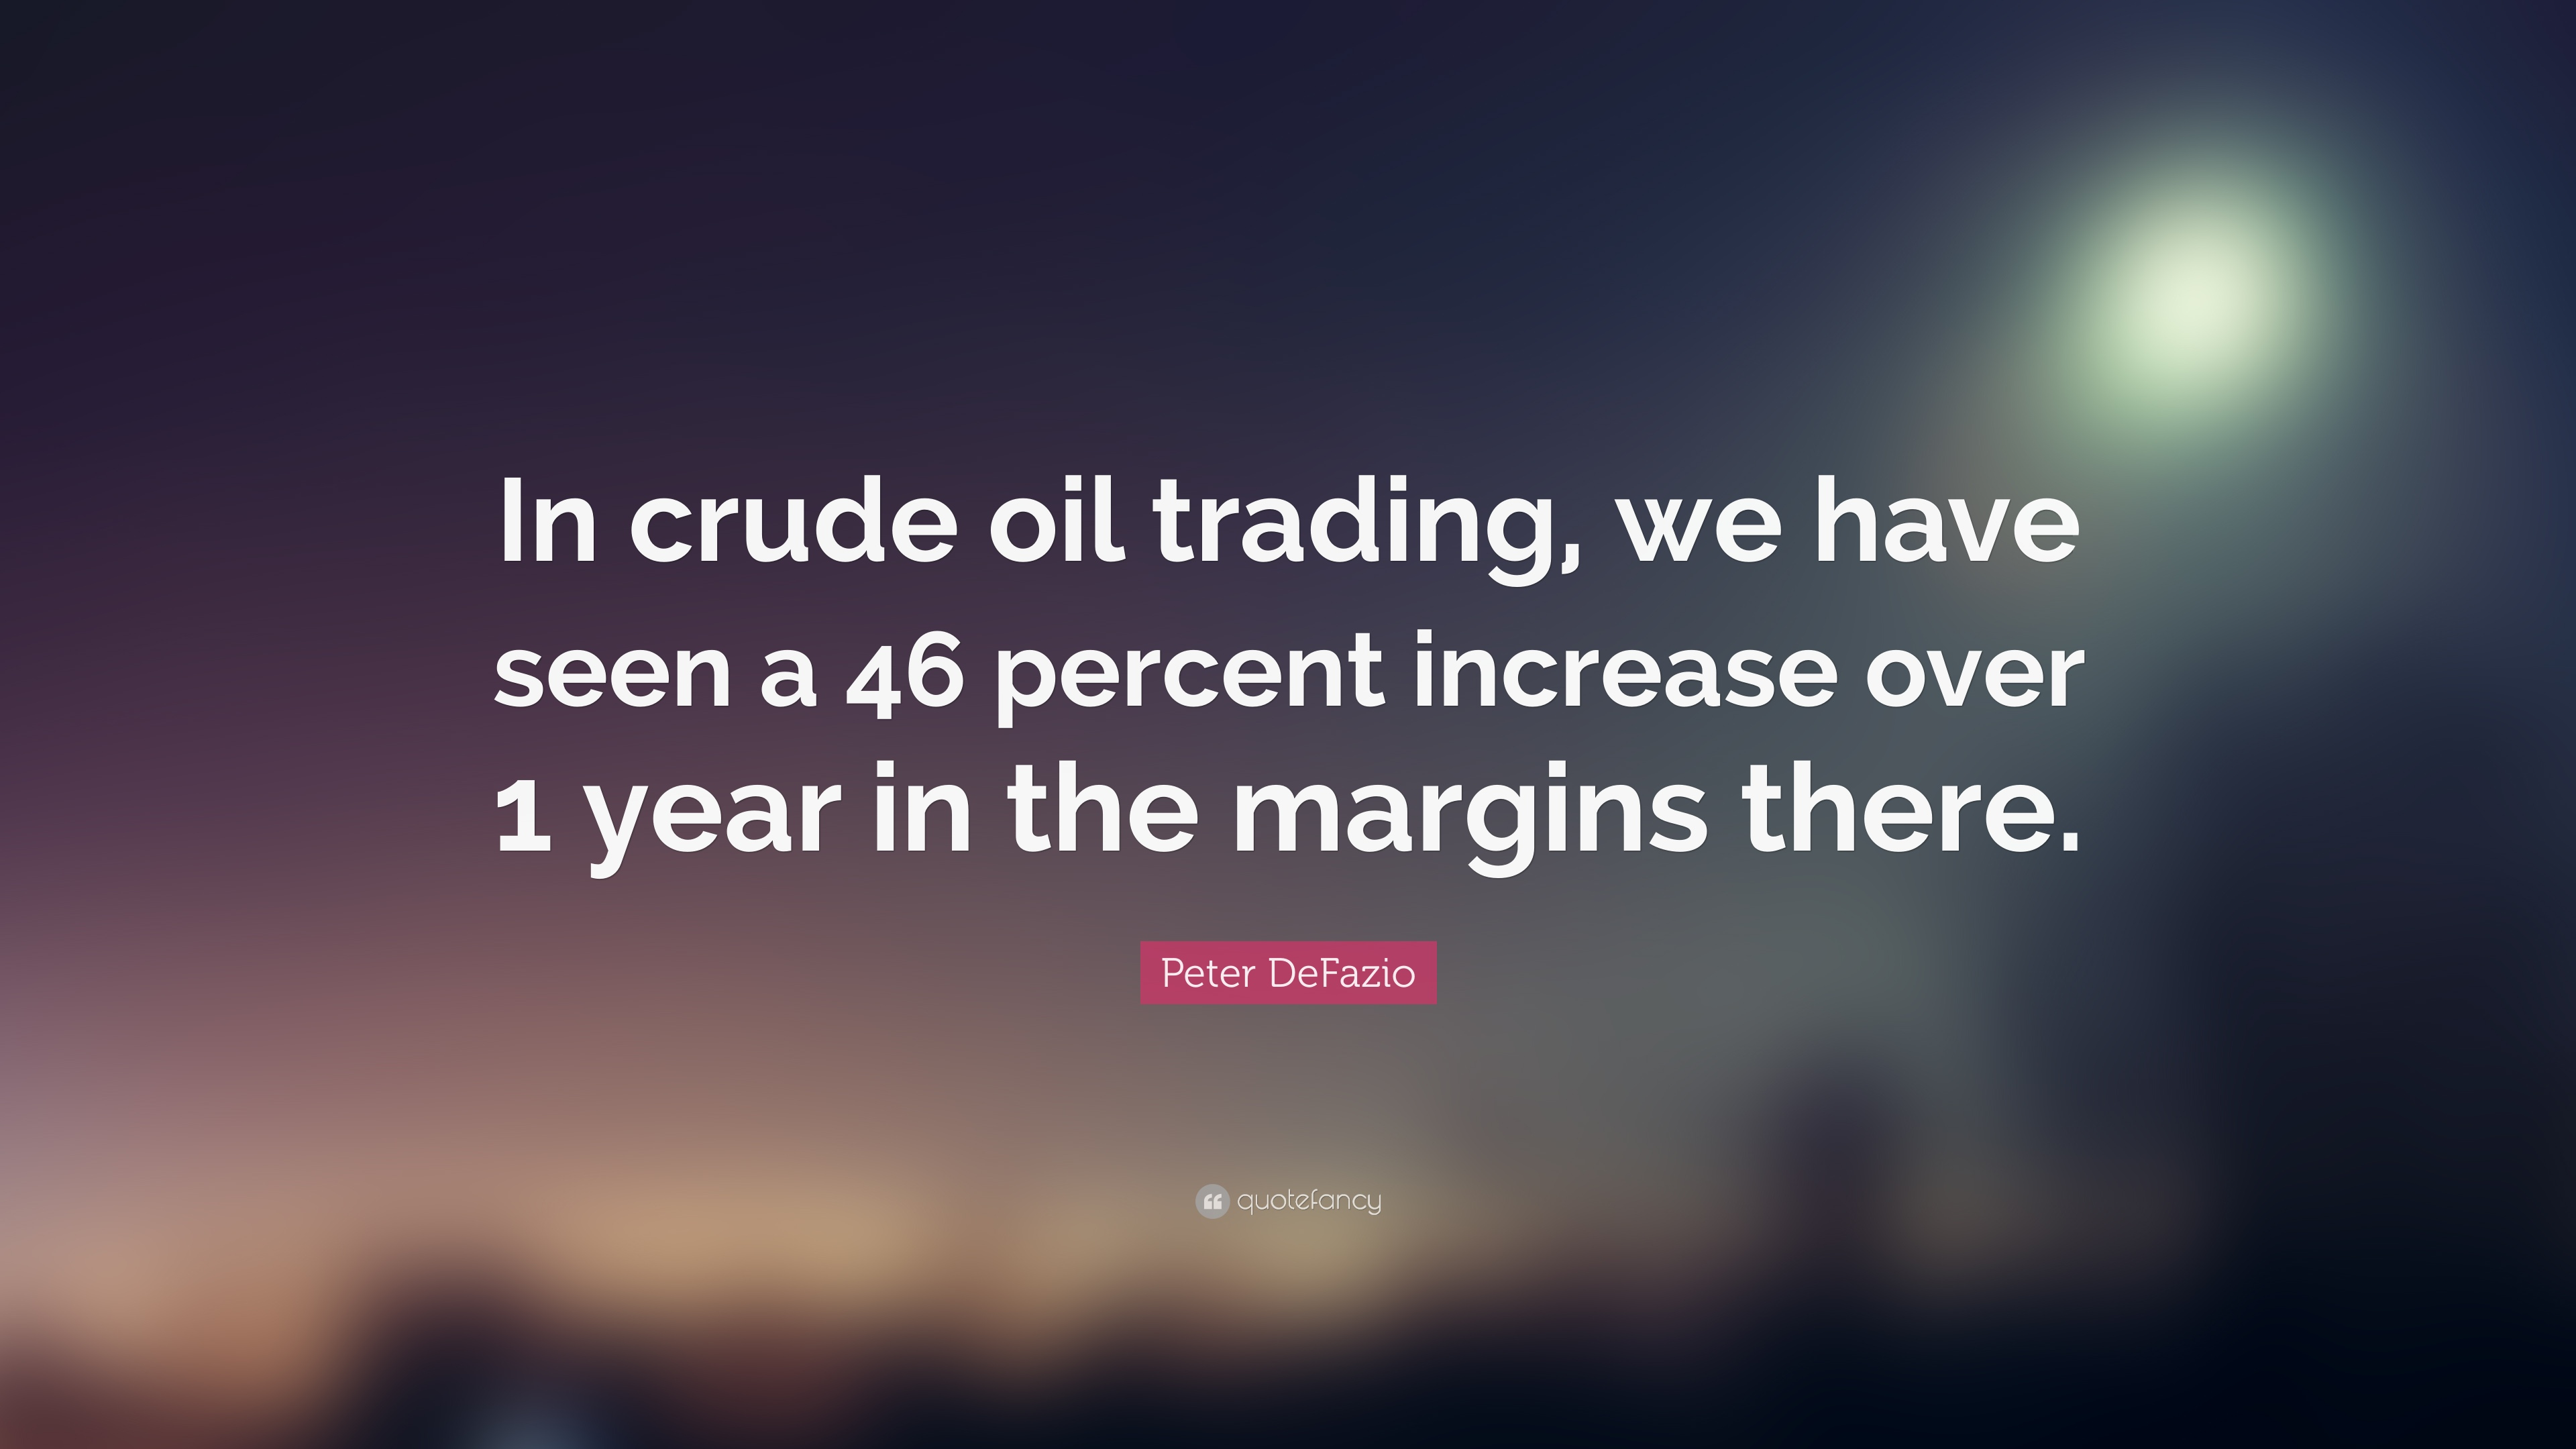 Crude oil quote quotes of the day crude oil quote peter defazio quote in crude oil trading we have seen a 46 buycottarizona Choice Image